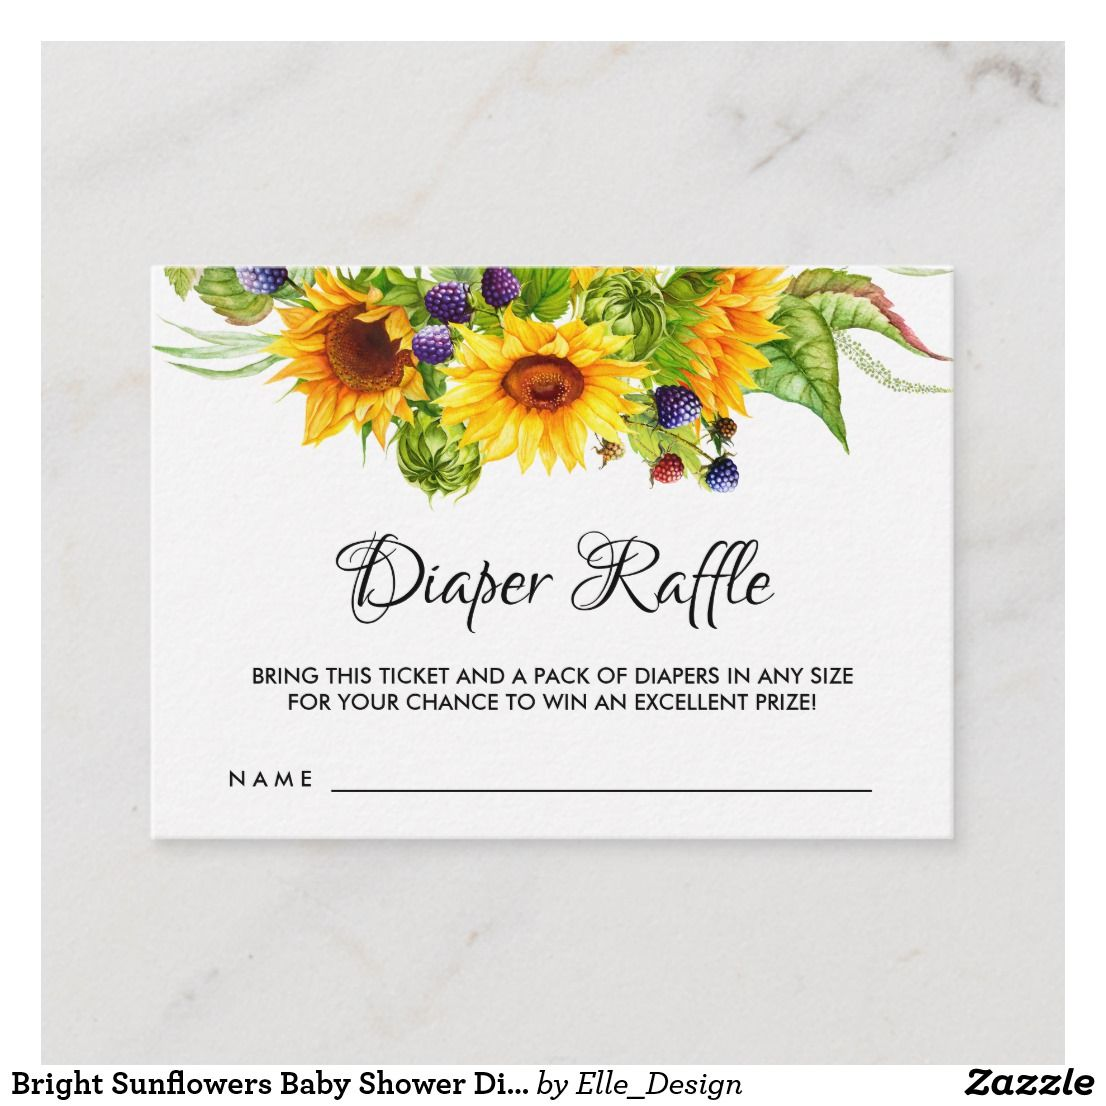 Bright Sunflowers Baby Shower Diaper Raffle Ticket